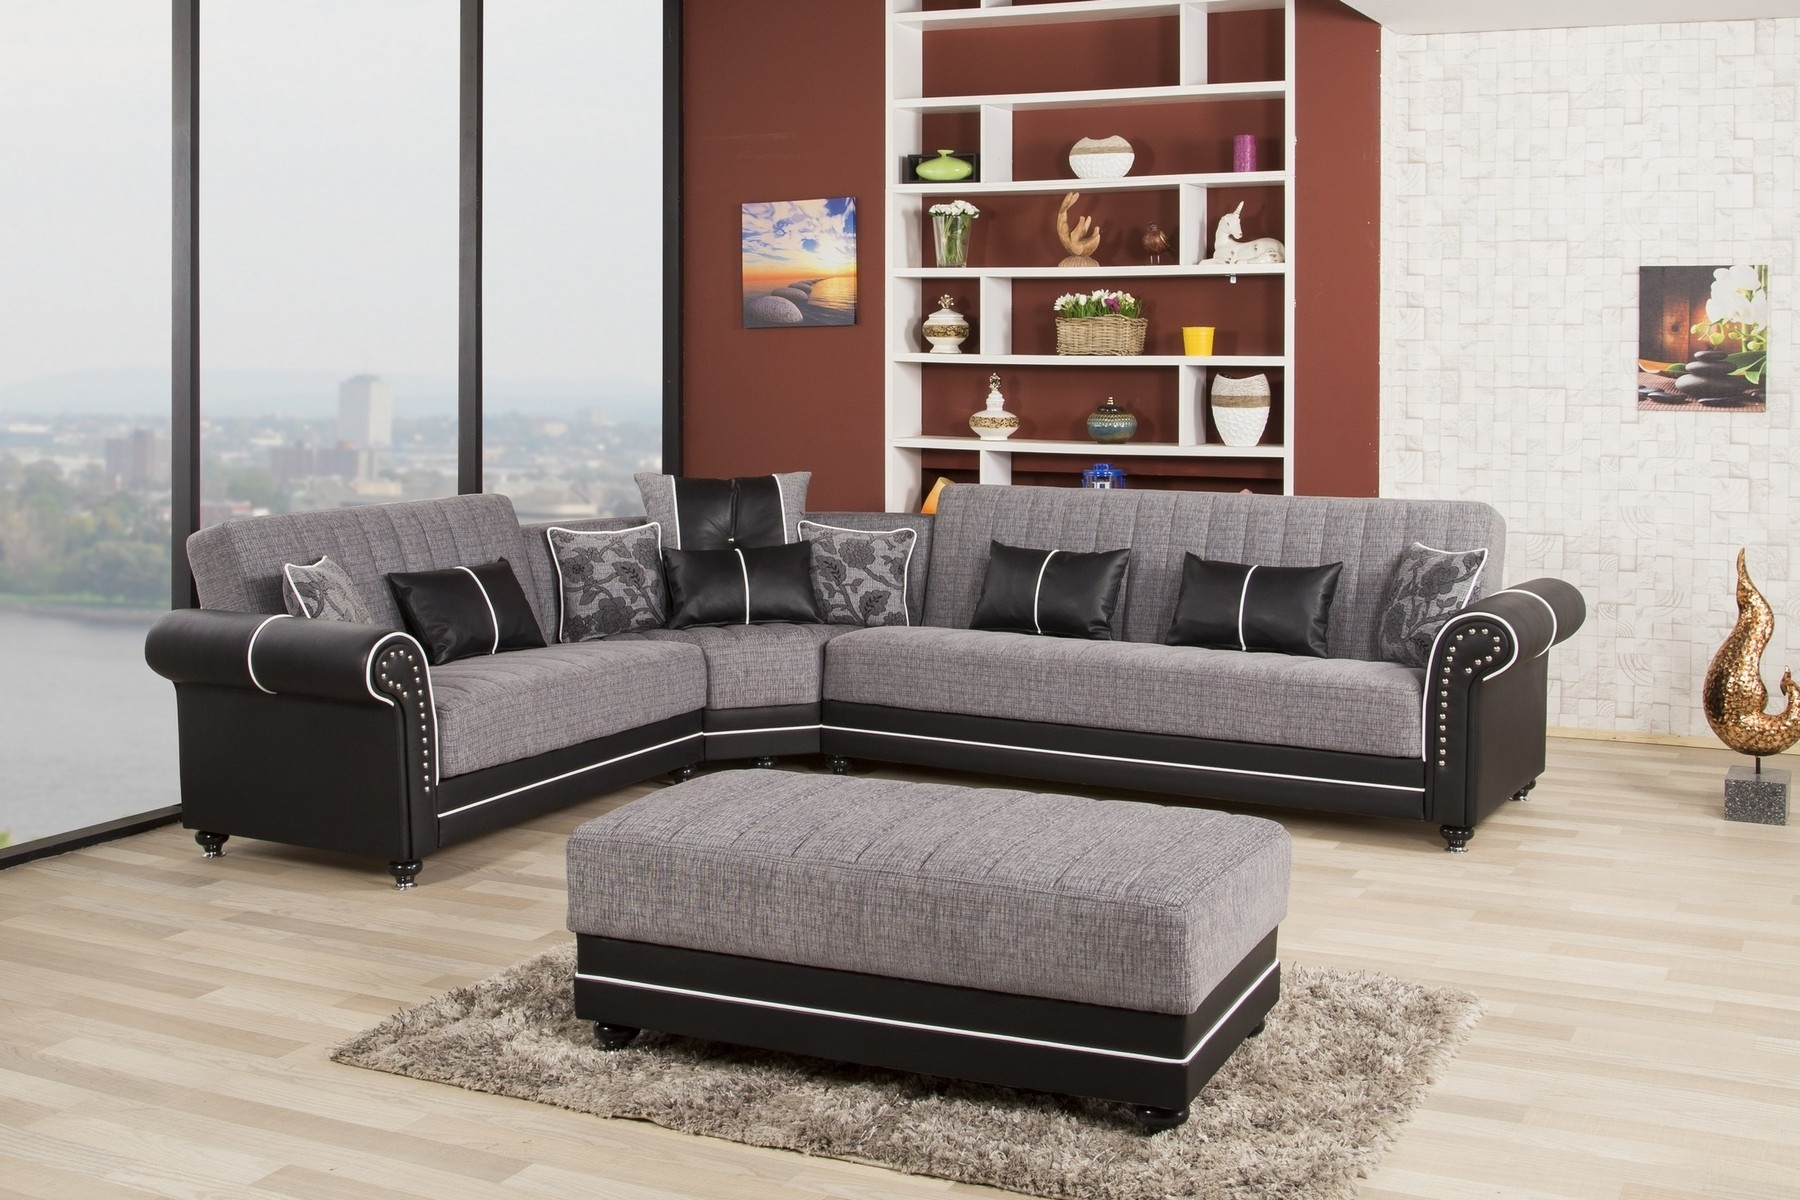 Gallery Of Royal Furniture Sectional Sofas View 9 15 Photos